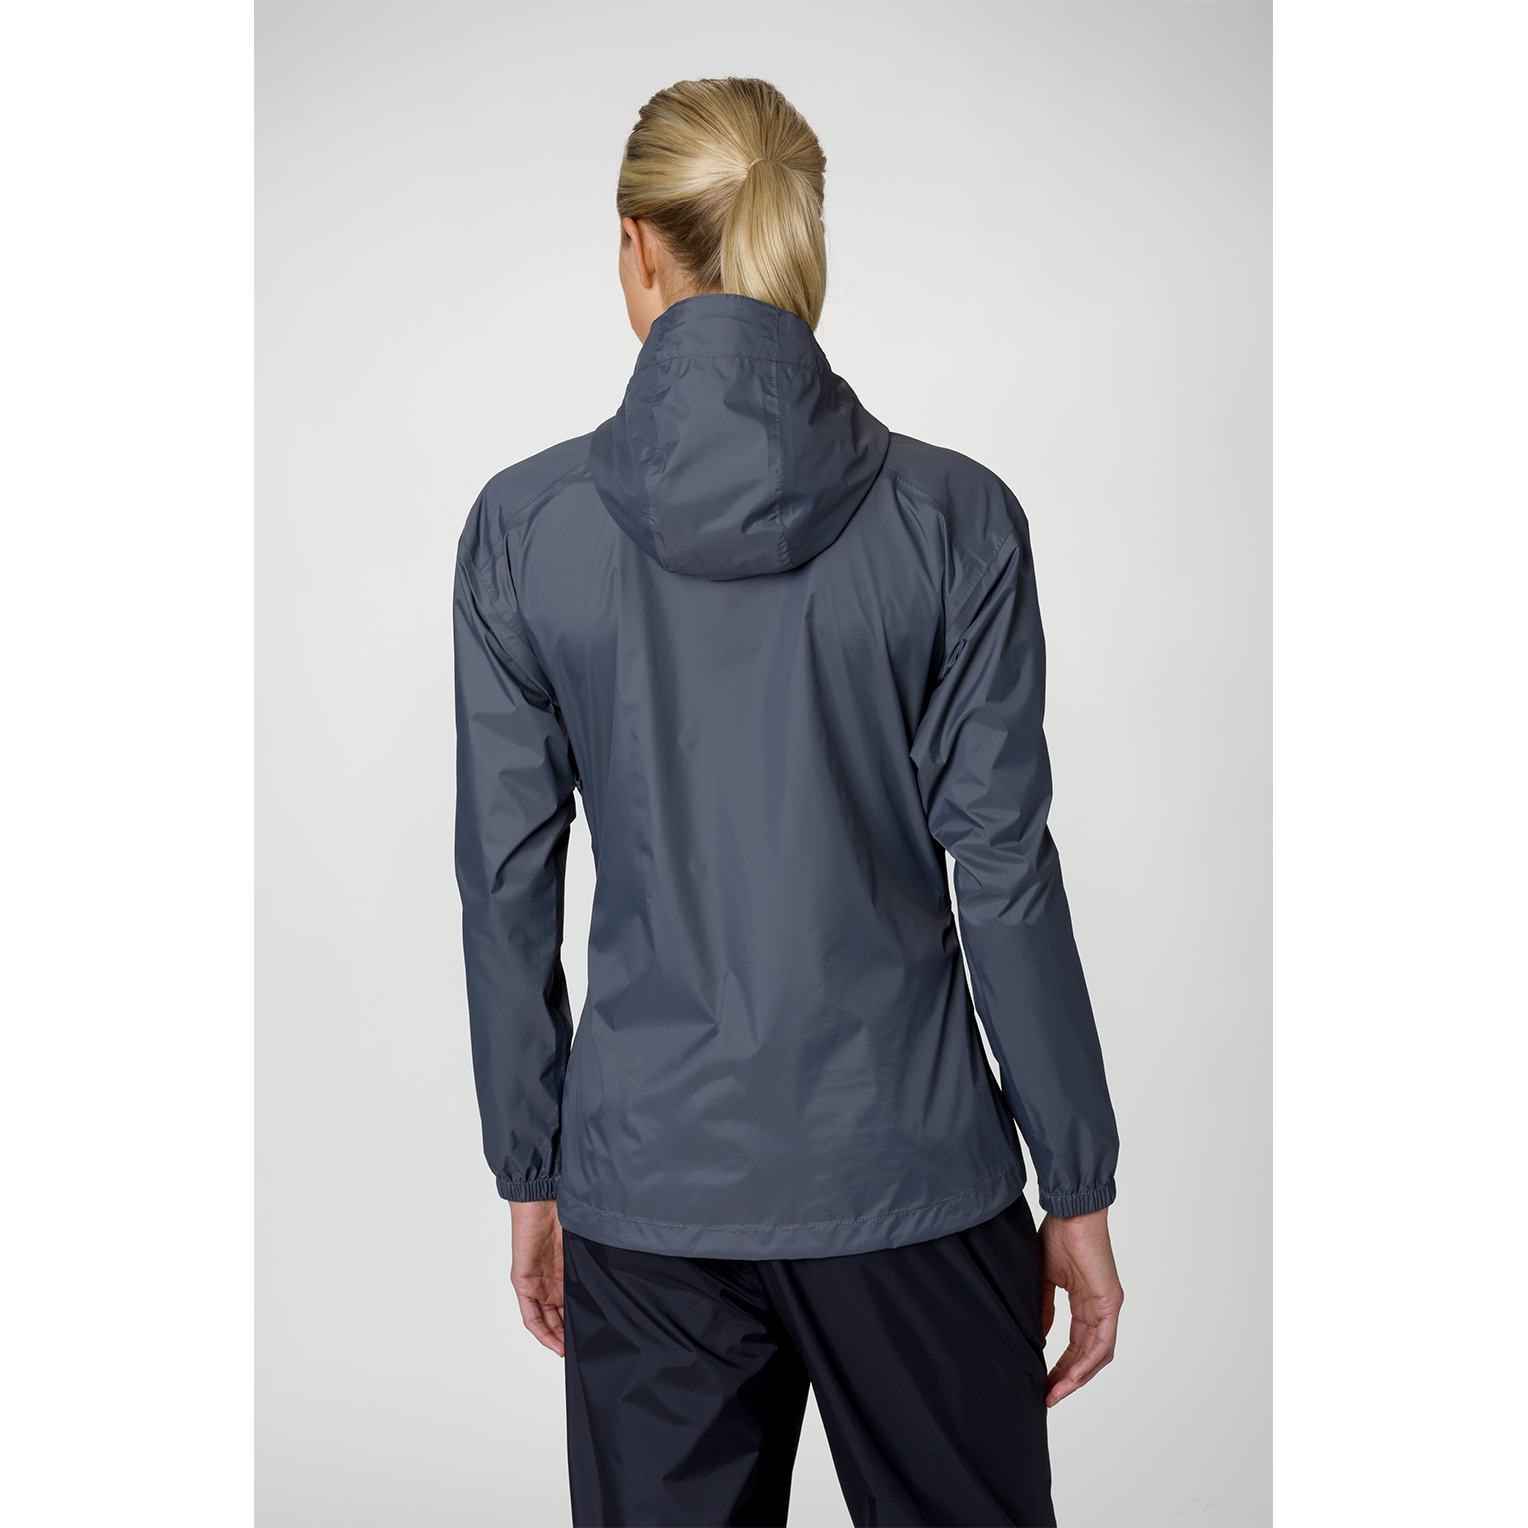 Helly Hansen Loke Jacket, Charcoal Tights.no